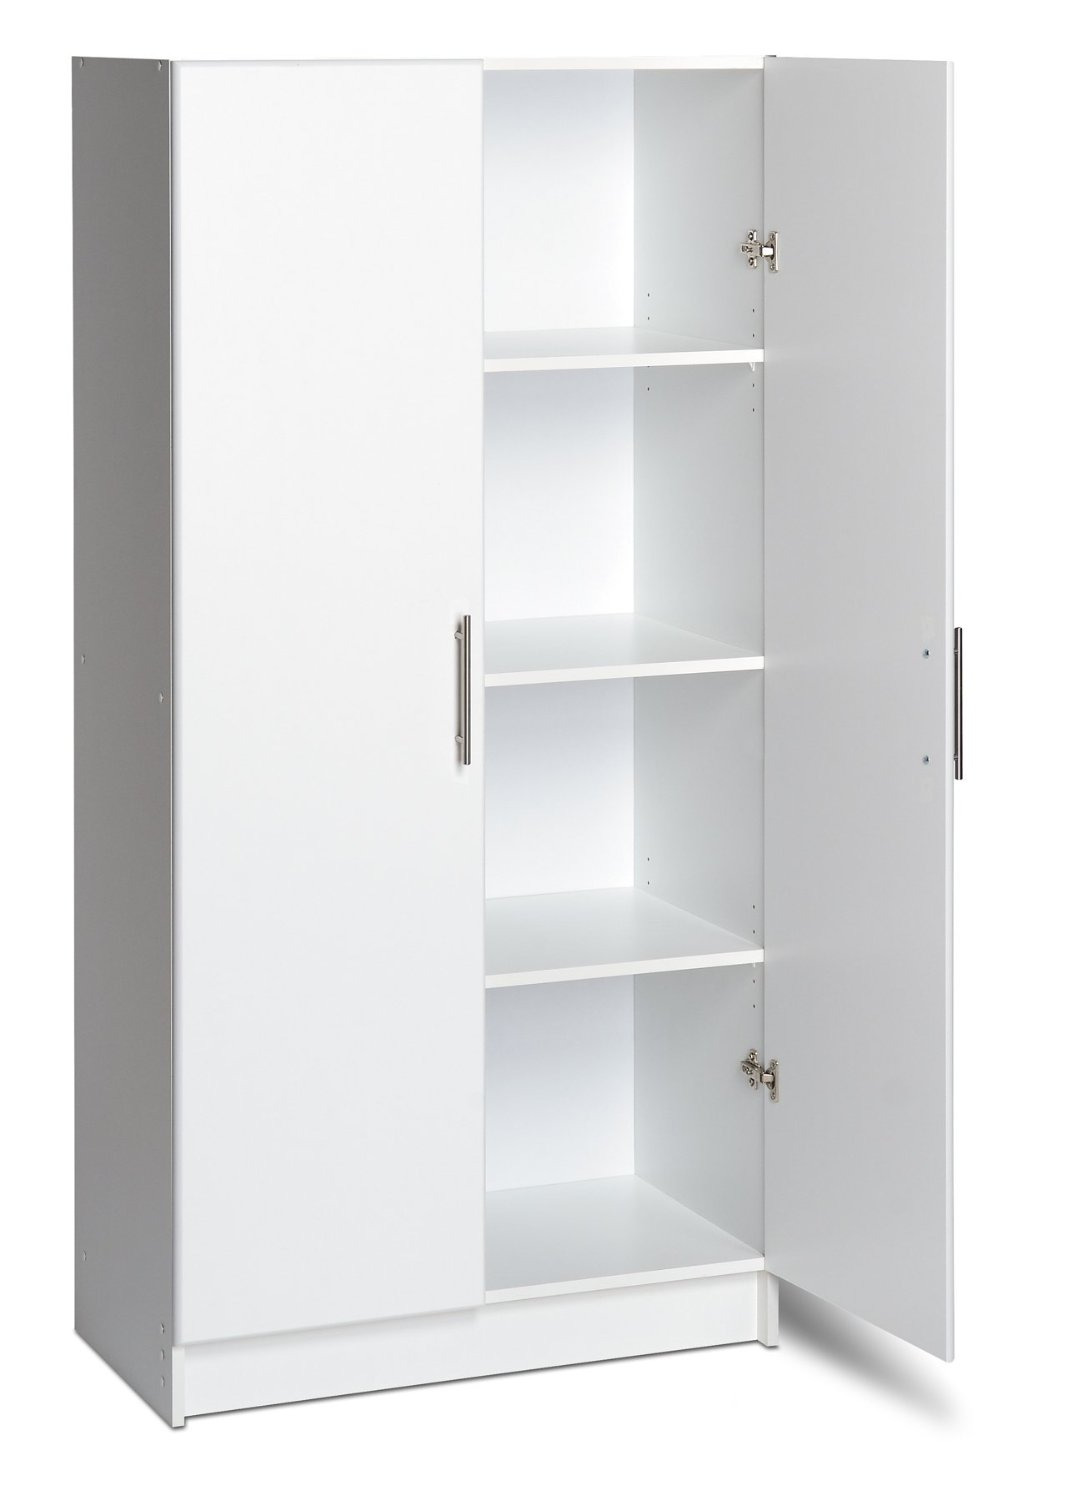 Food Storage Cabinet with Doors Luxury White Kitchen Pantry Cabinet to Store and organize the Kitchen